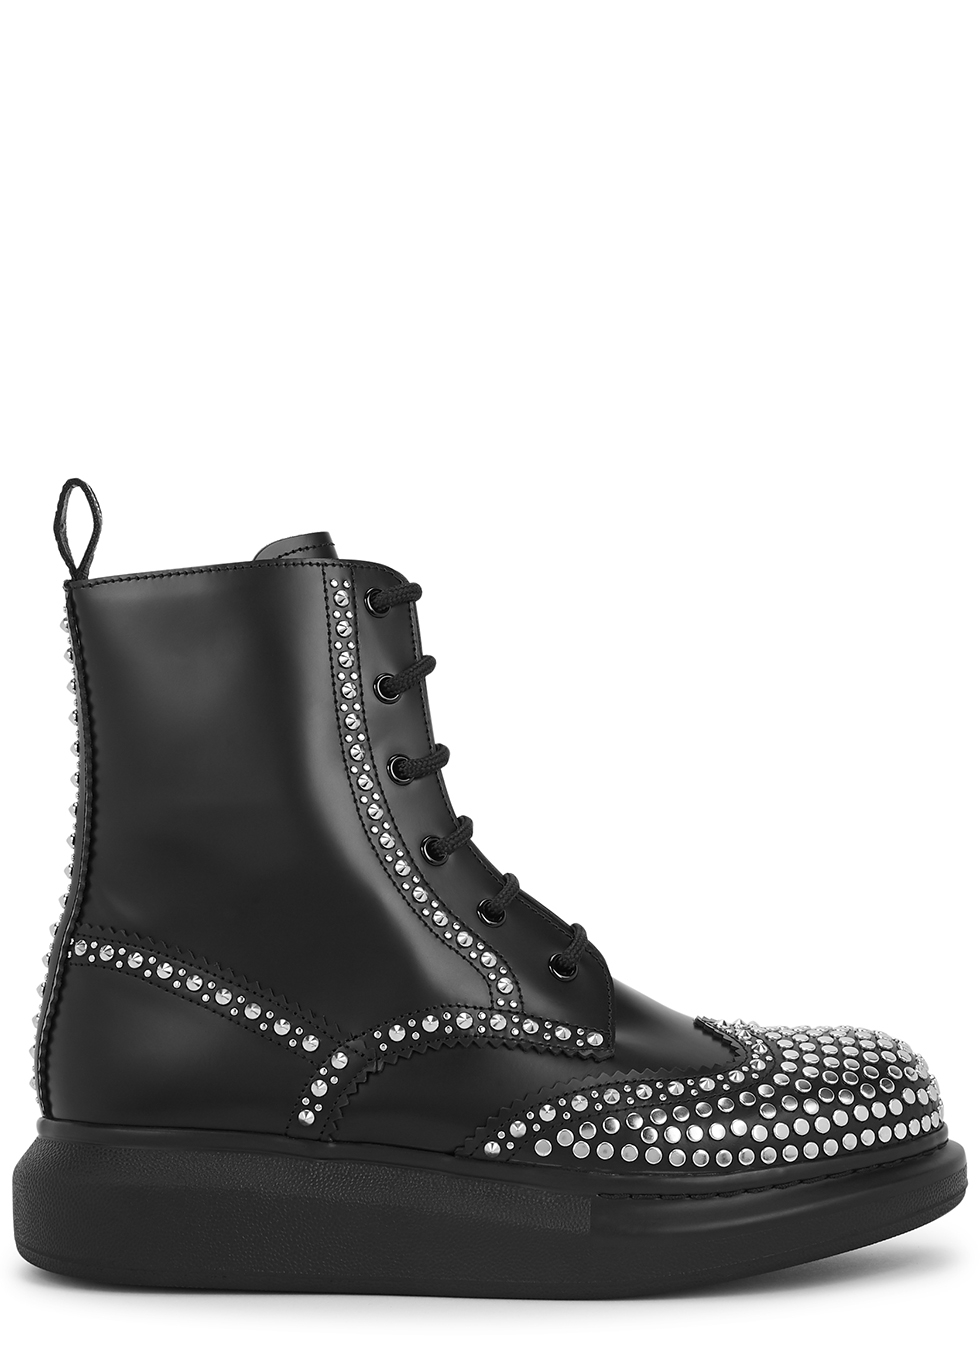 Hybrid 50 black leather ankle boots